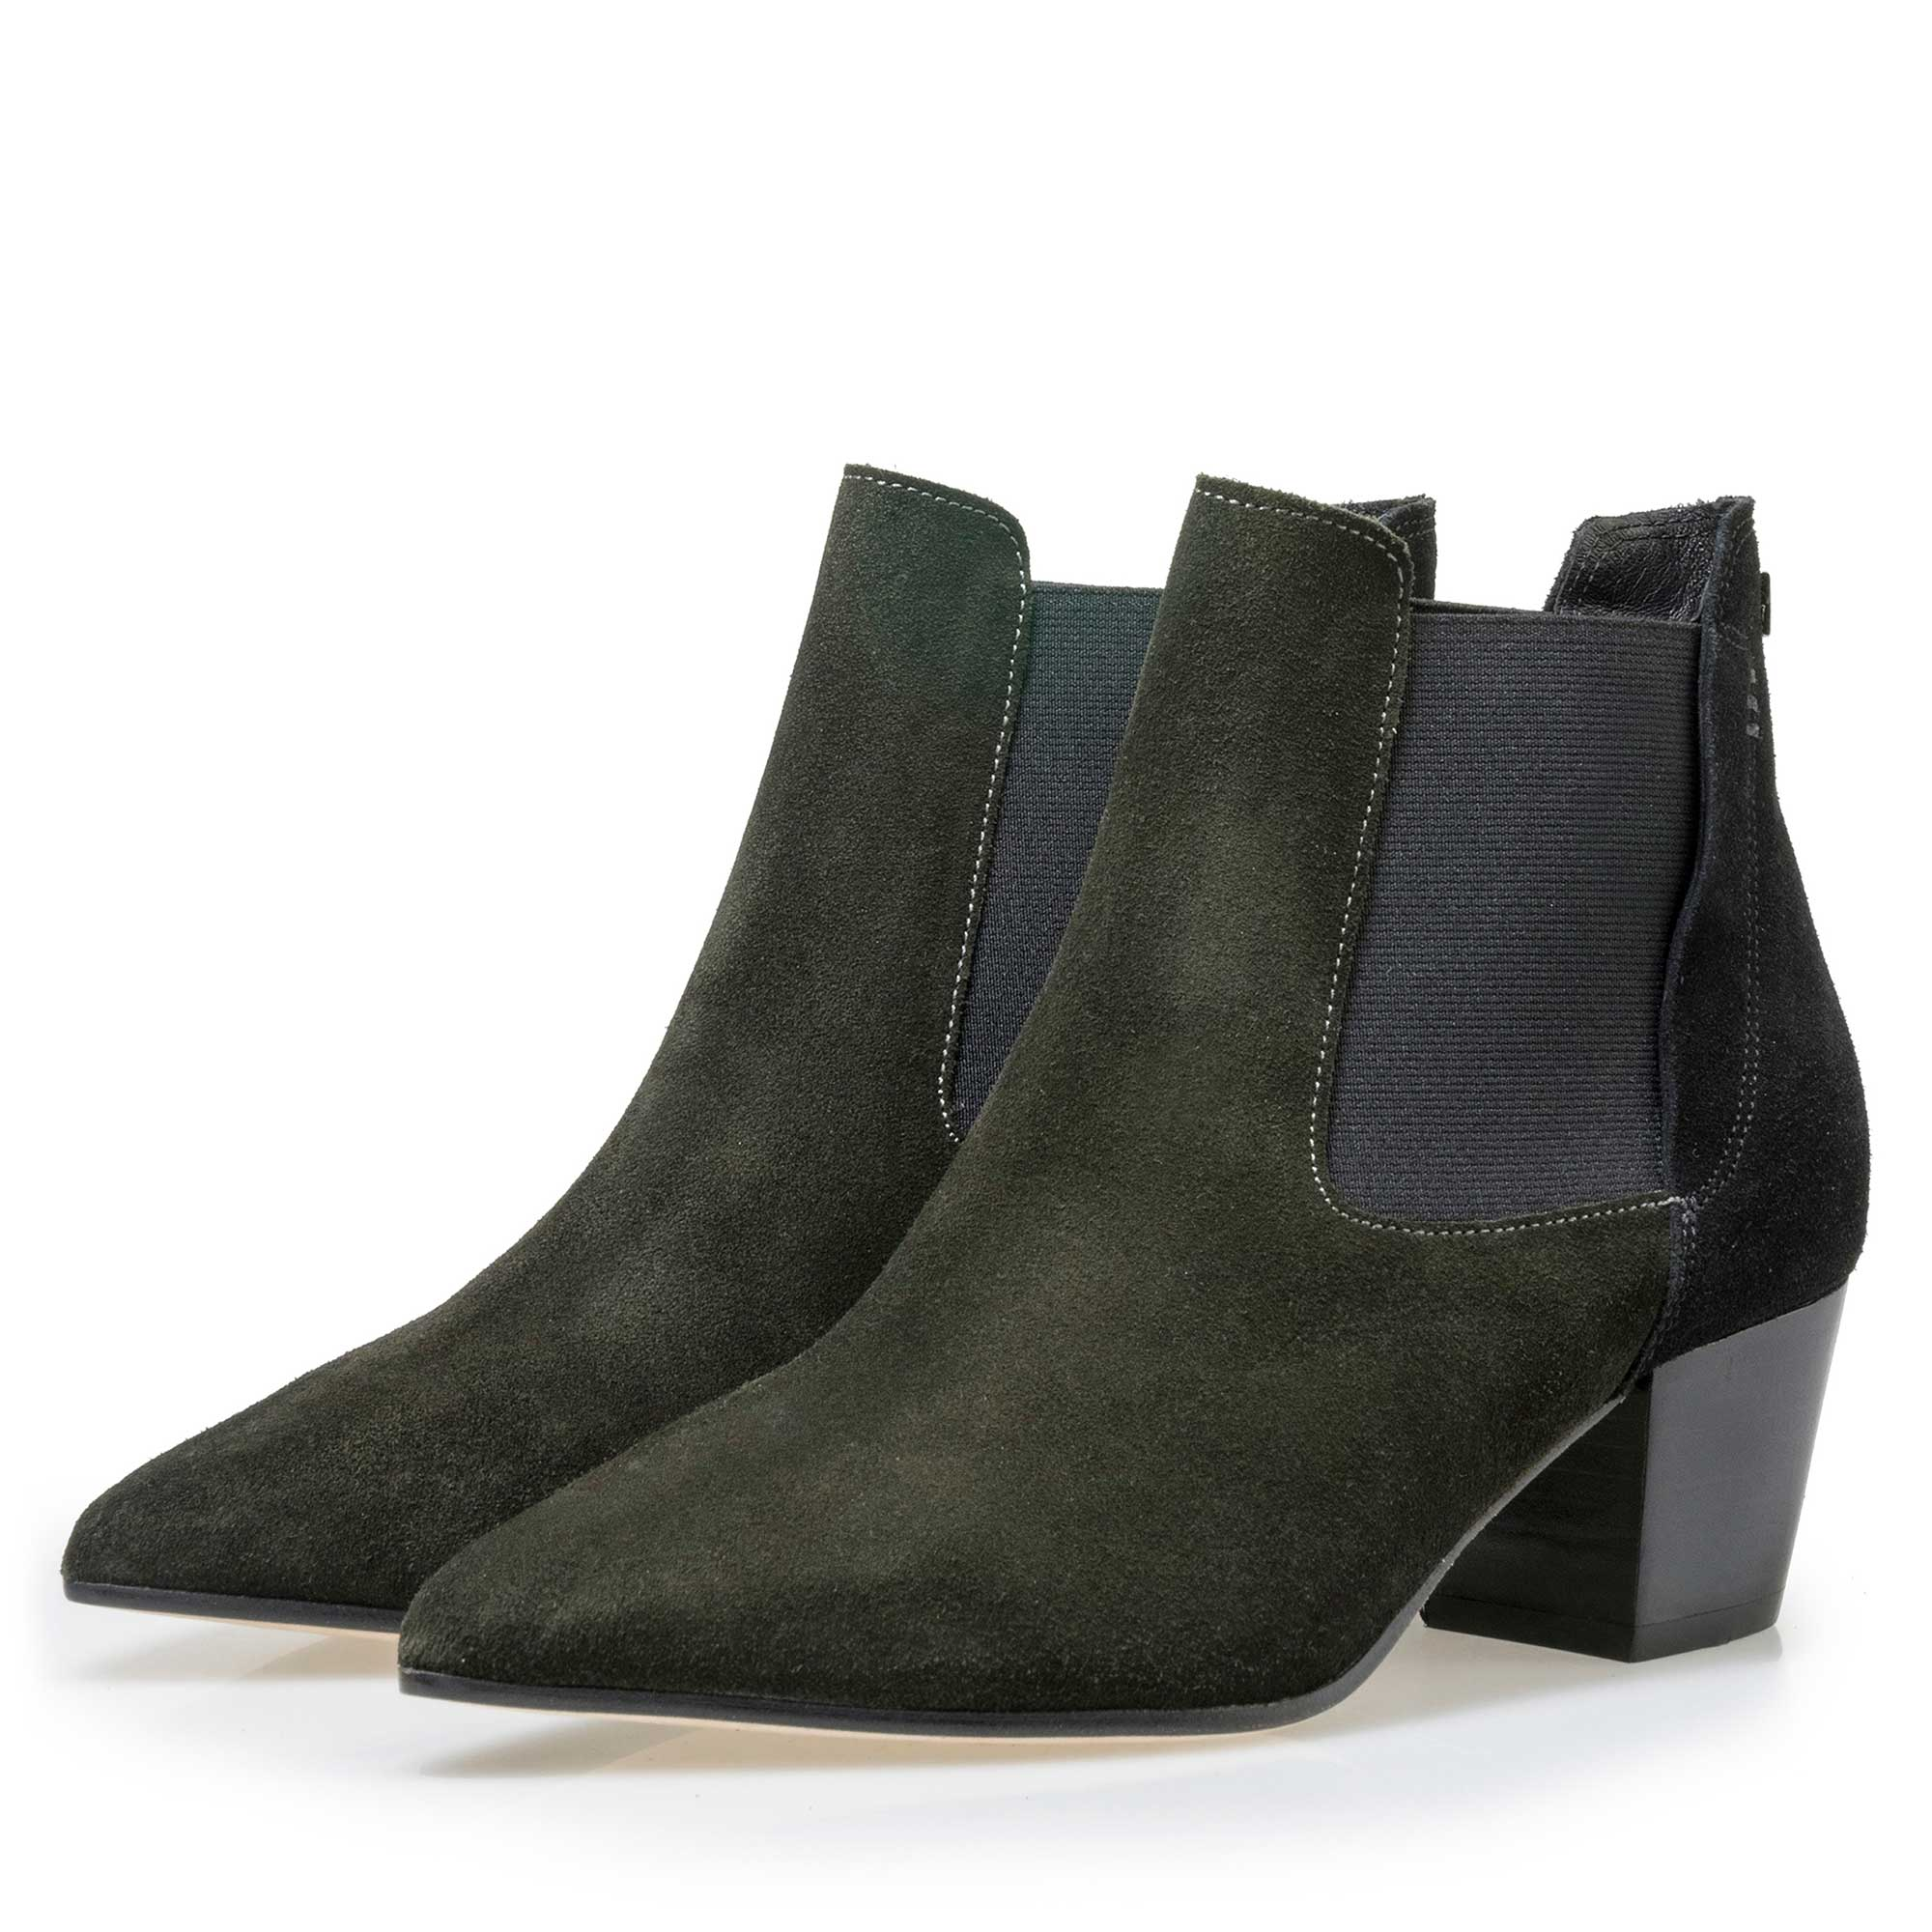 85192/01 - Floris van Bommel olive green suede leather ankle boot